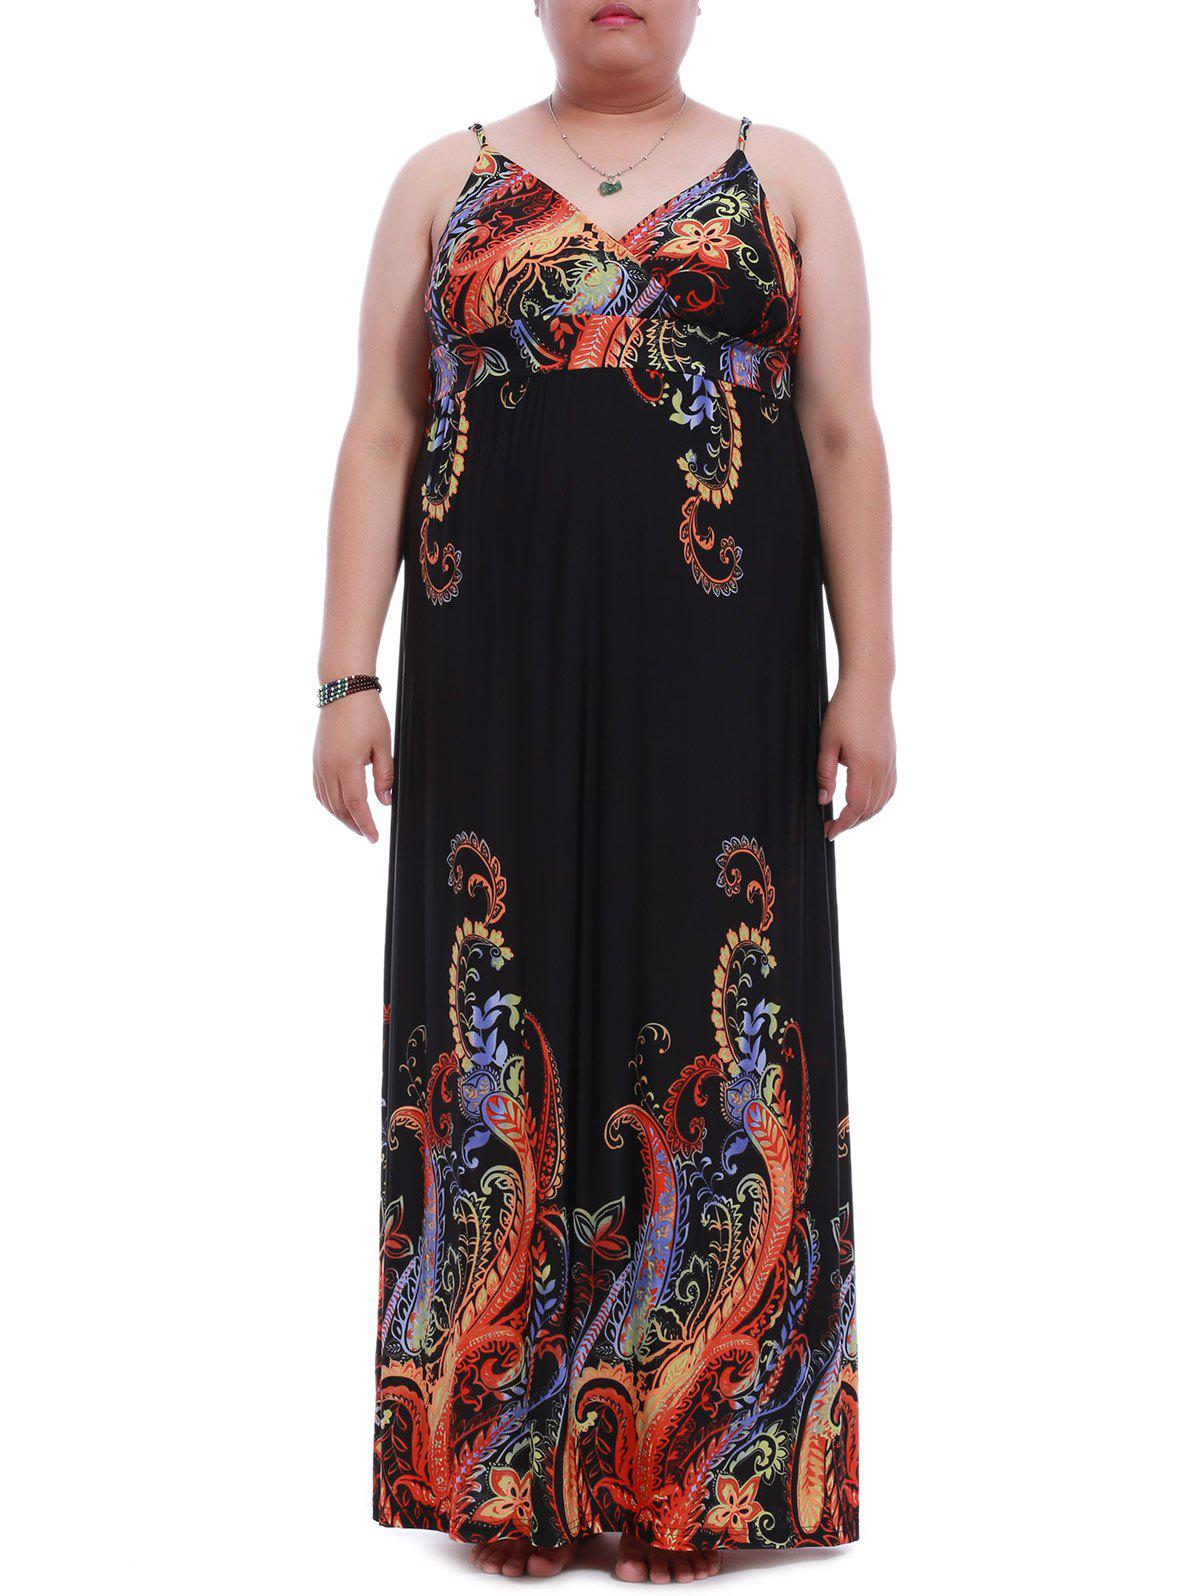 Charming Plus Size Spaghetti Strap Backless Print Dress For Women dux